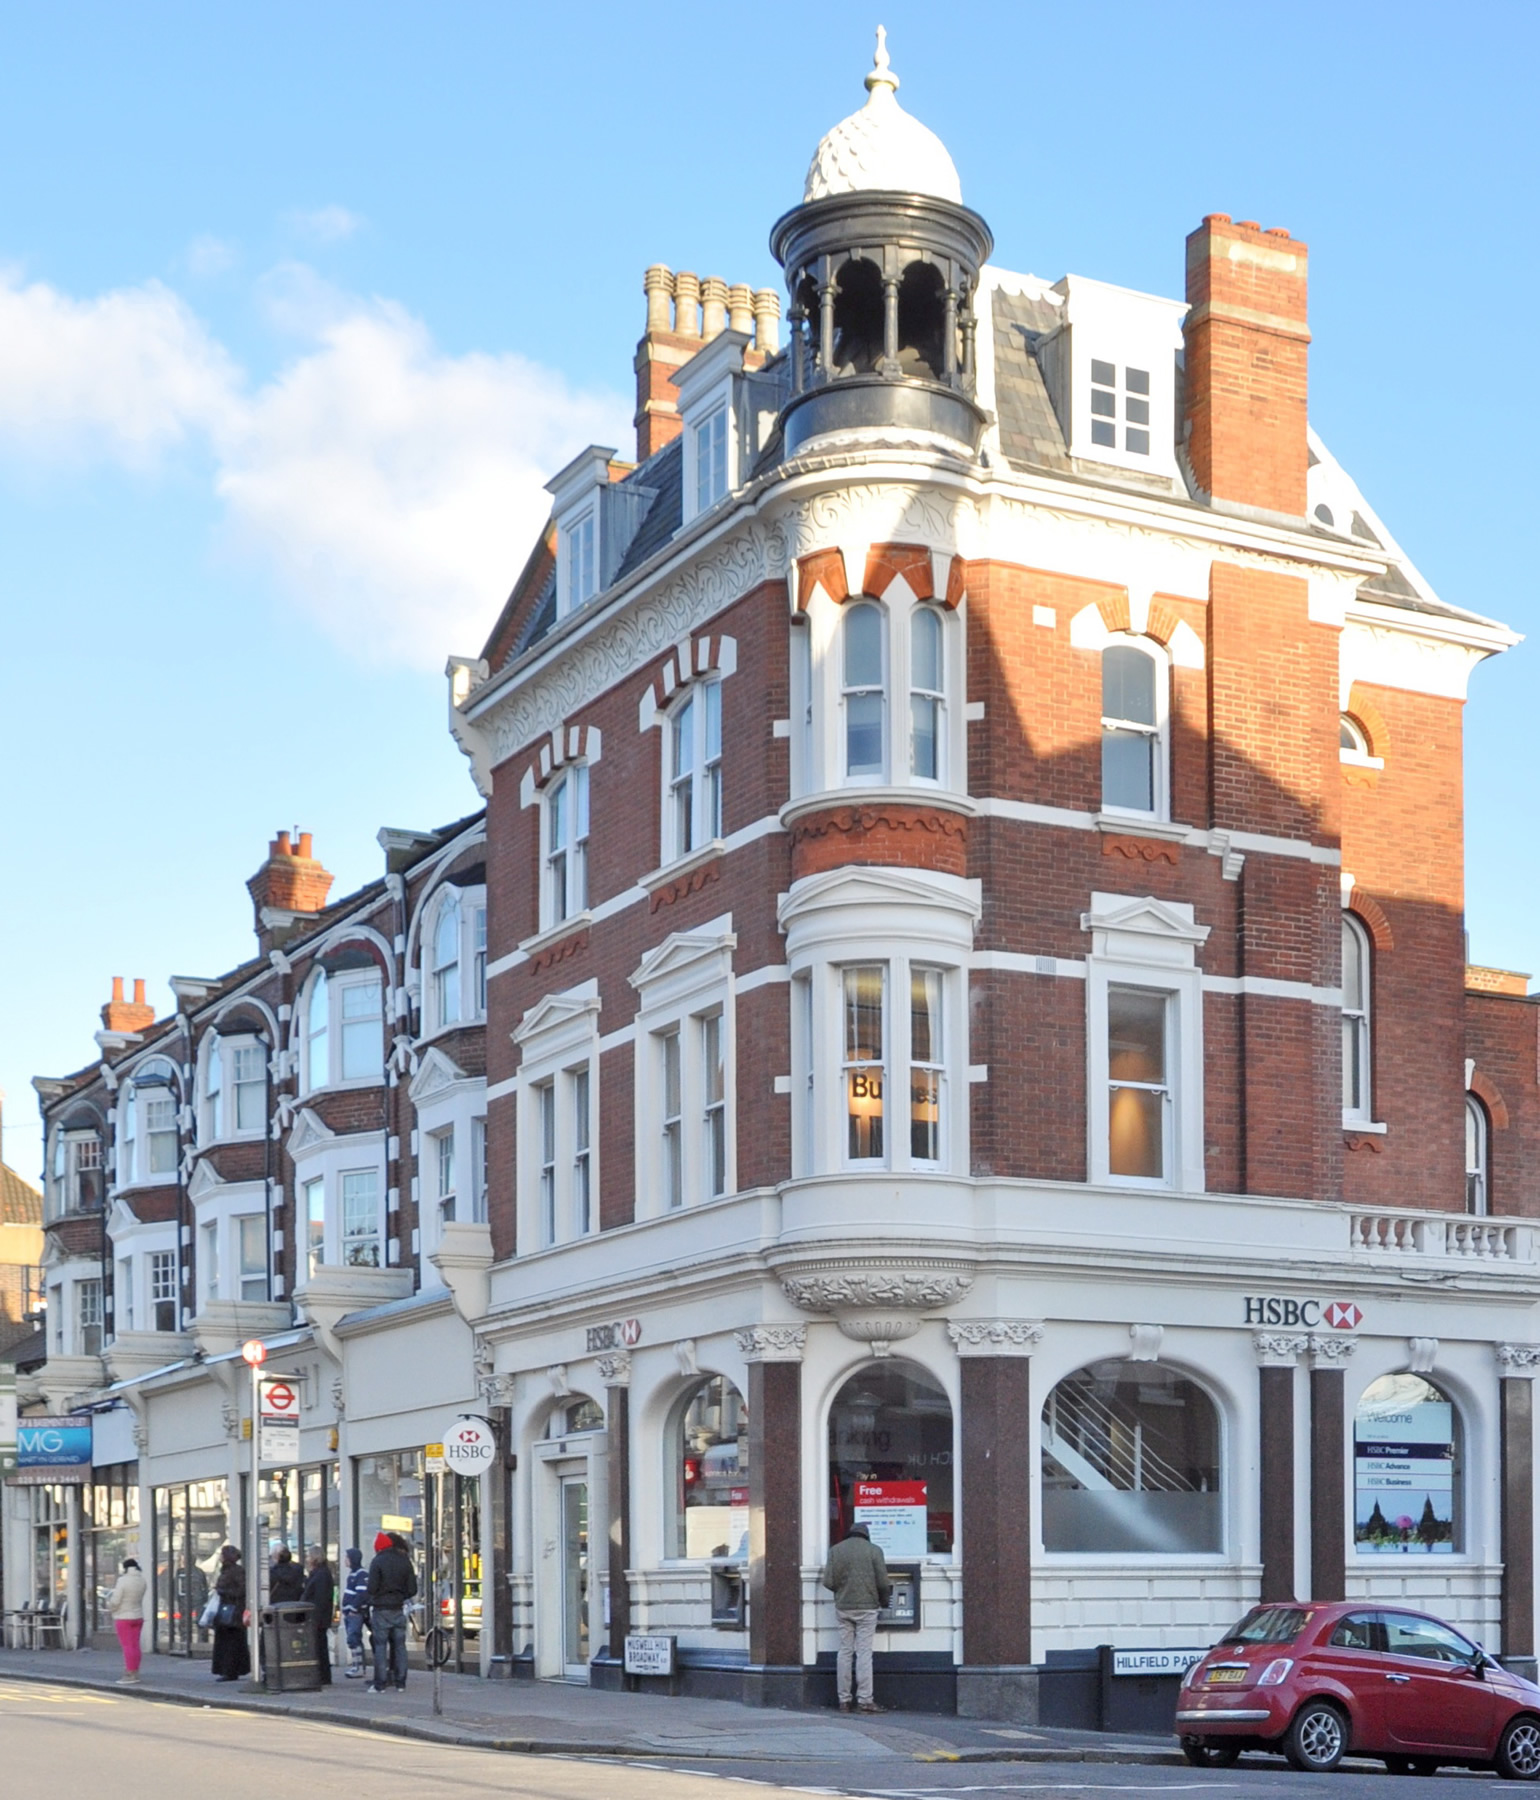 88-114 Muswell Hill Broadway